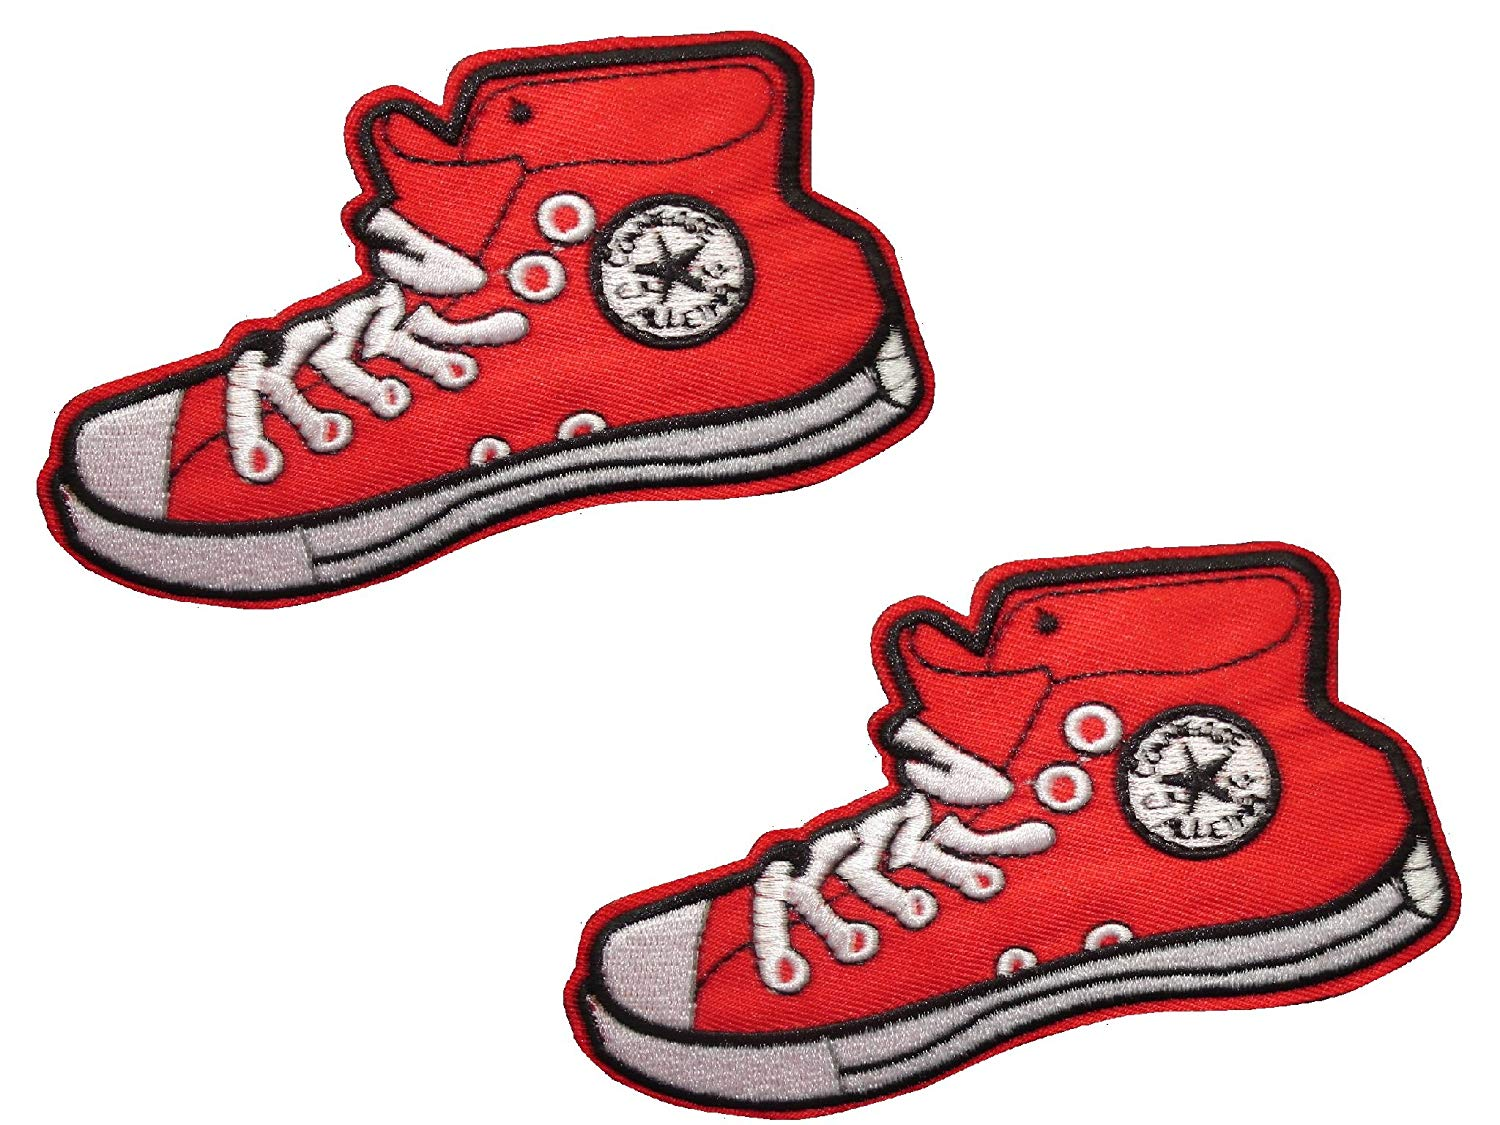 RED SNEAKER SHOES Iron On Patch * Lot of 2 pieces * Applique Motif Children Decal 4.5 x 2.6 inches (11.3 6.5 cm)